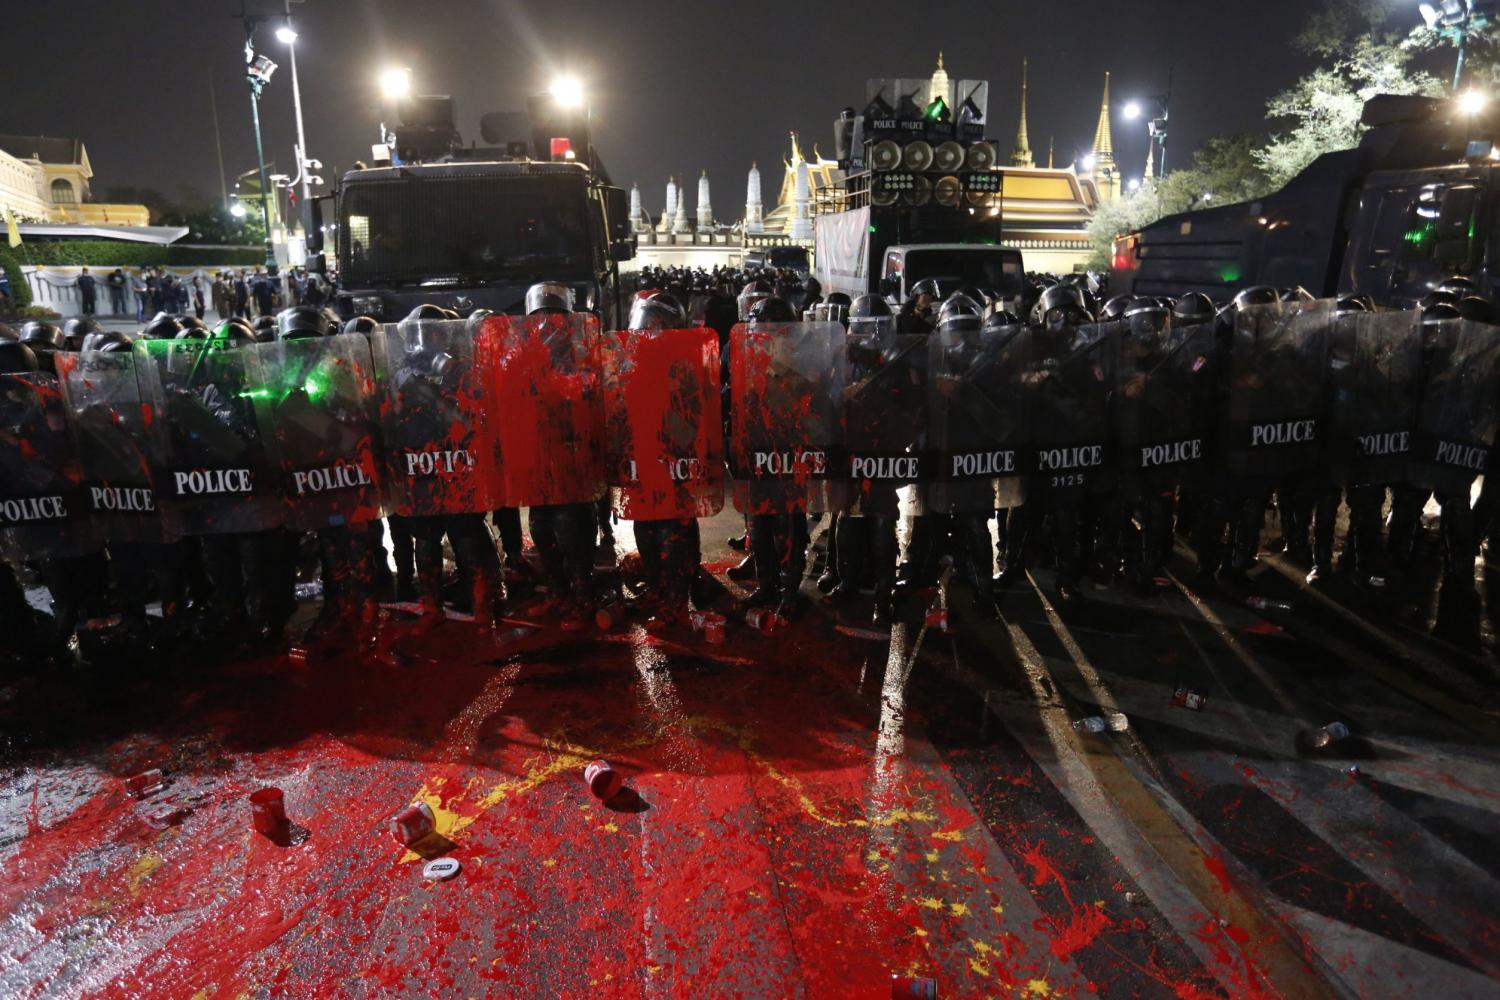 Hold the line: Anti-riot police covered in paint thrown by protesters near the Royal Palace. Police had cordoned off areas near the palace amid a demonstration by the Ratsadorn group calling for the release of four protest leaders and the amending of the lese majeste law.